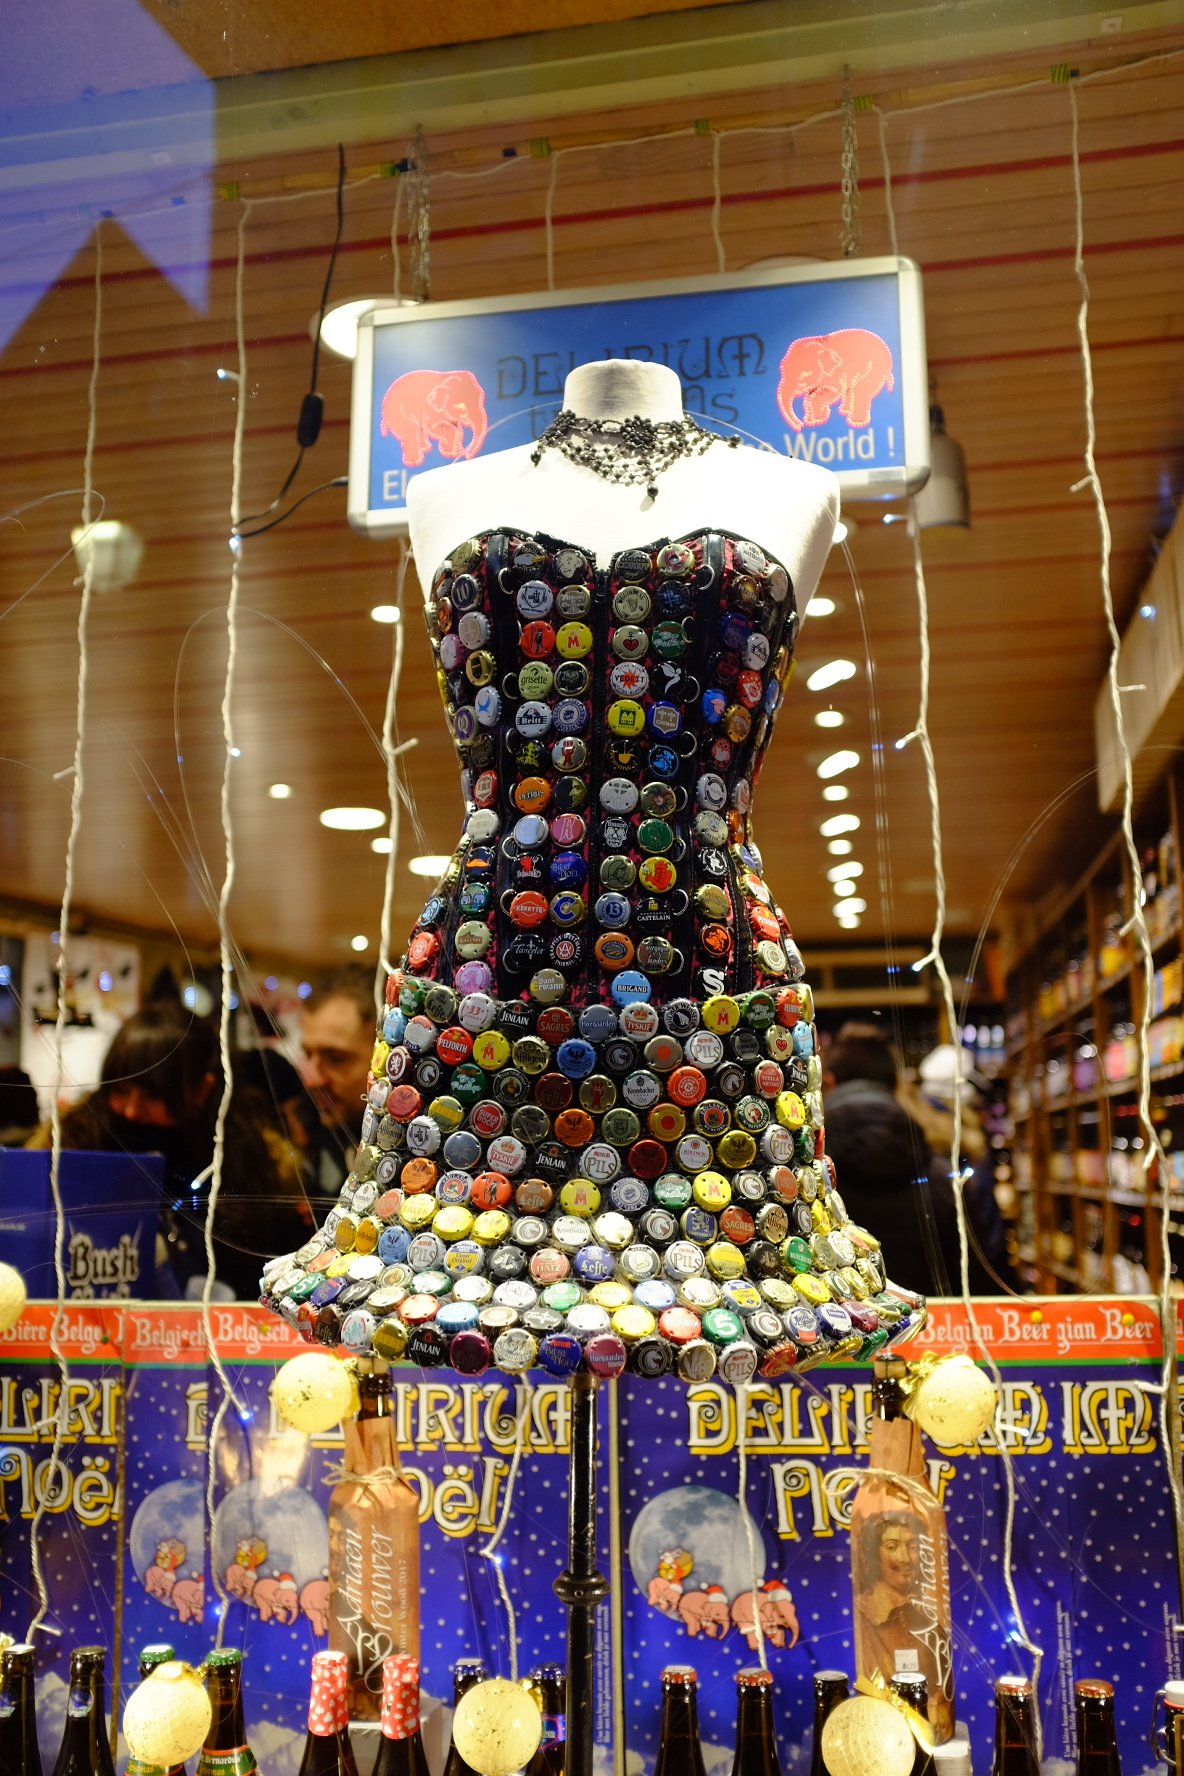 Colorful dress made out of beer bottle tops 2